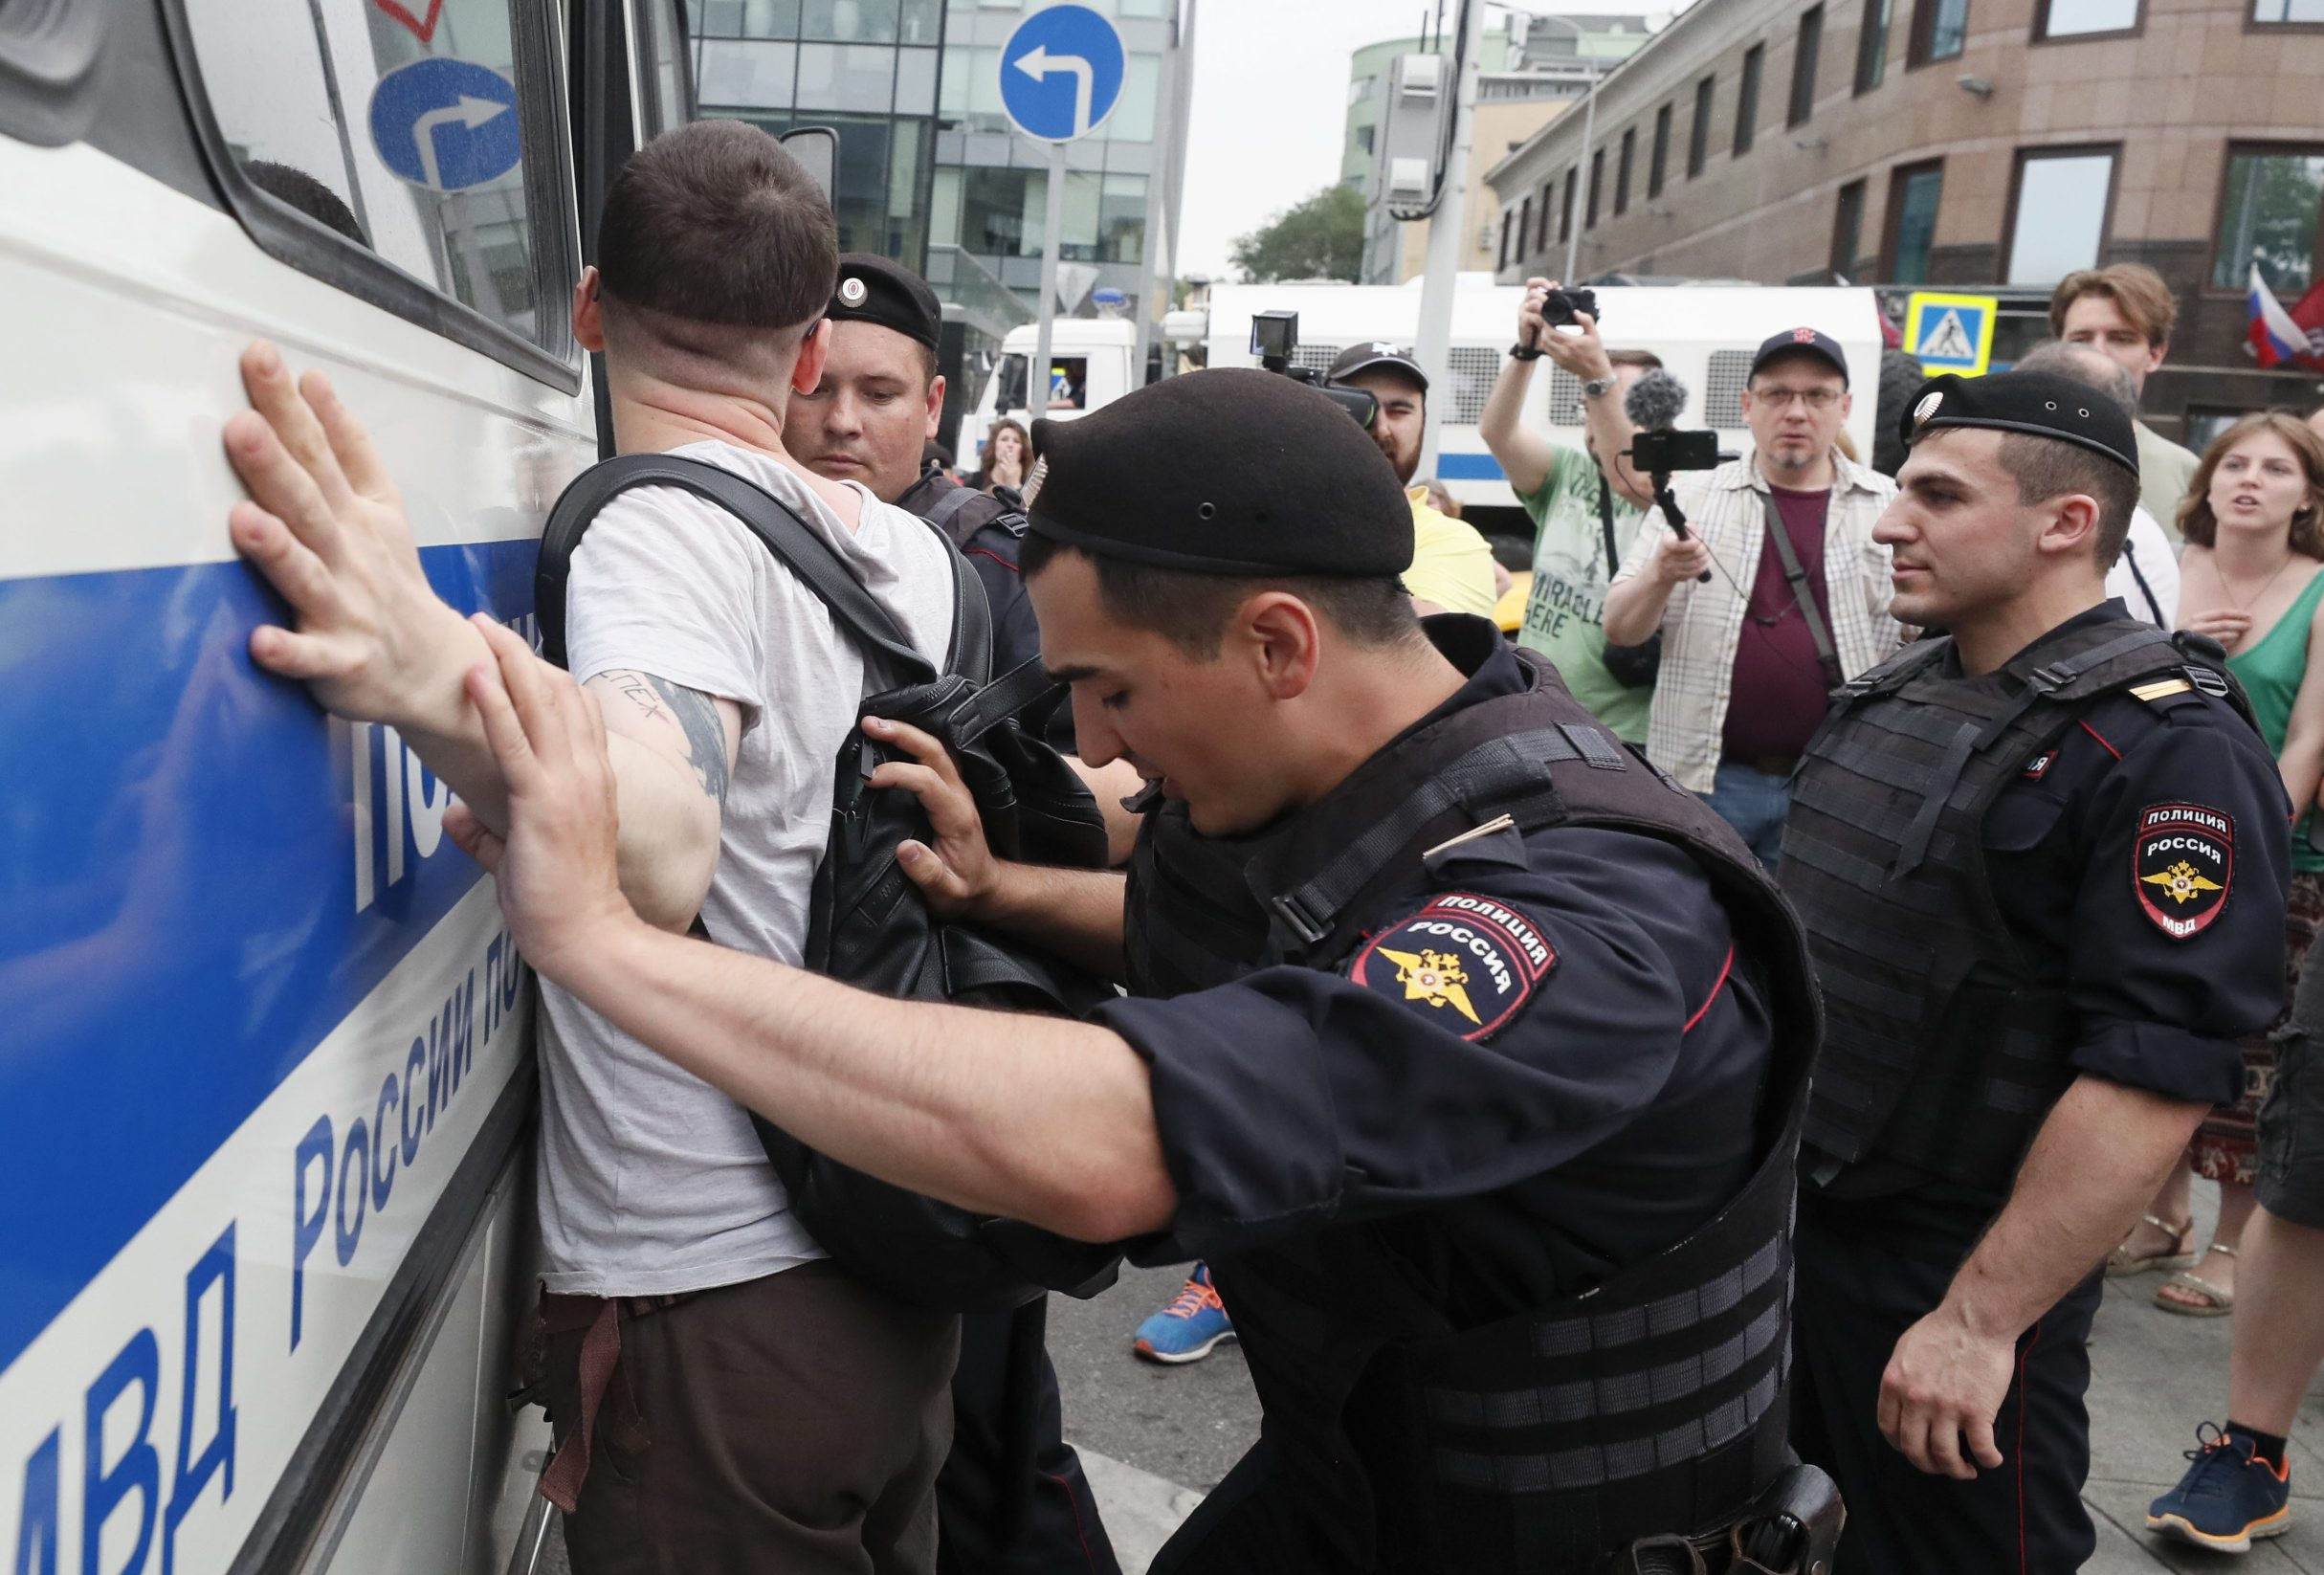 2019-06-12T103258Z_1279755620_UP1EF6C0TAY1A_RTRMADP_3_RUSSIA-JOURNALIST-PROTESTS